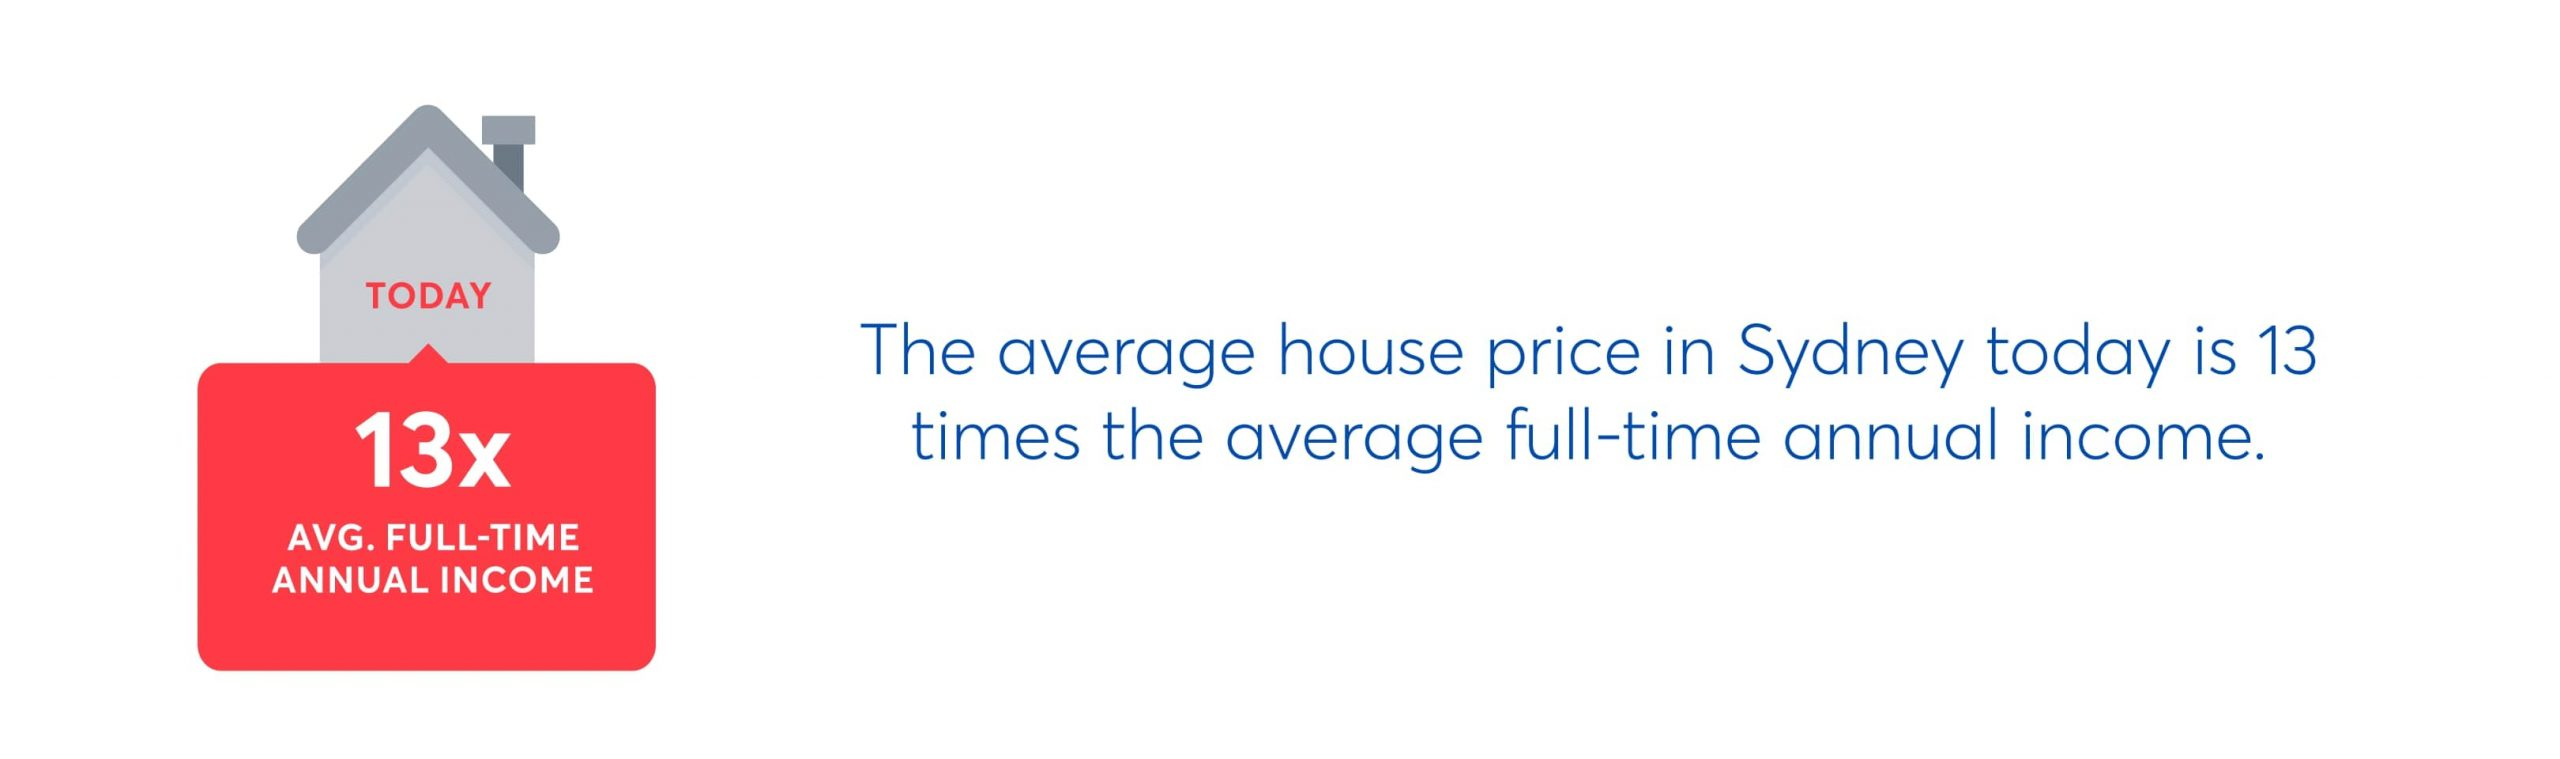 the average house price in sydney today is 13 times the average full time annual income